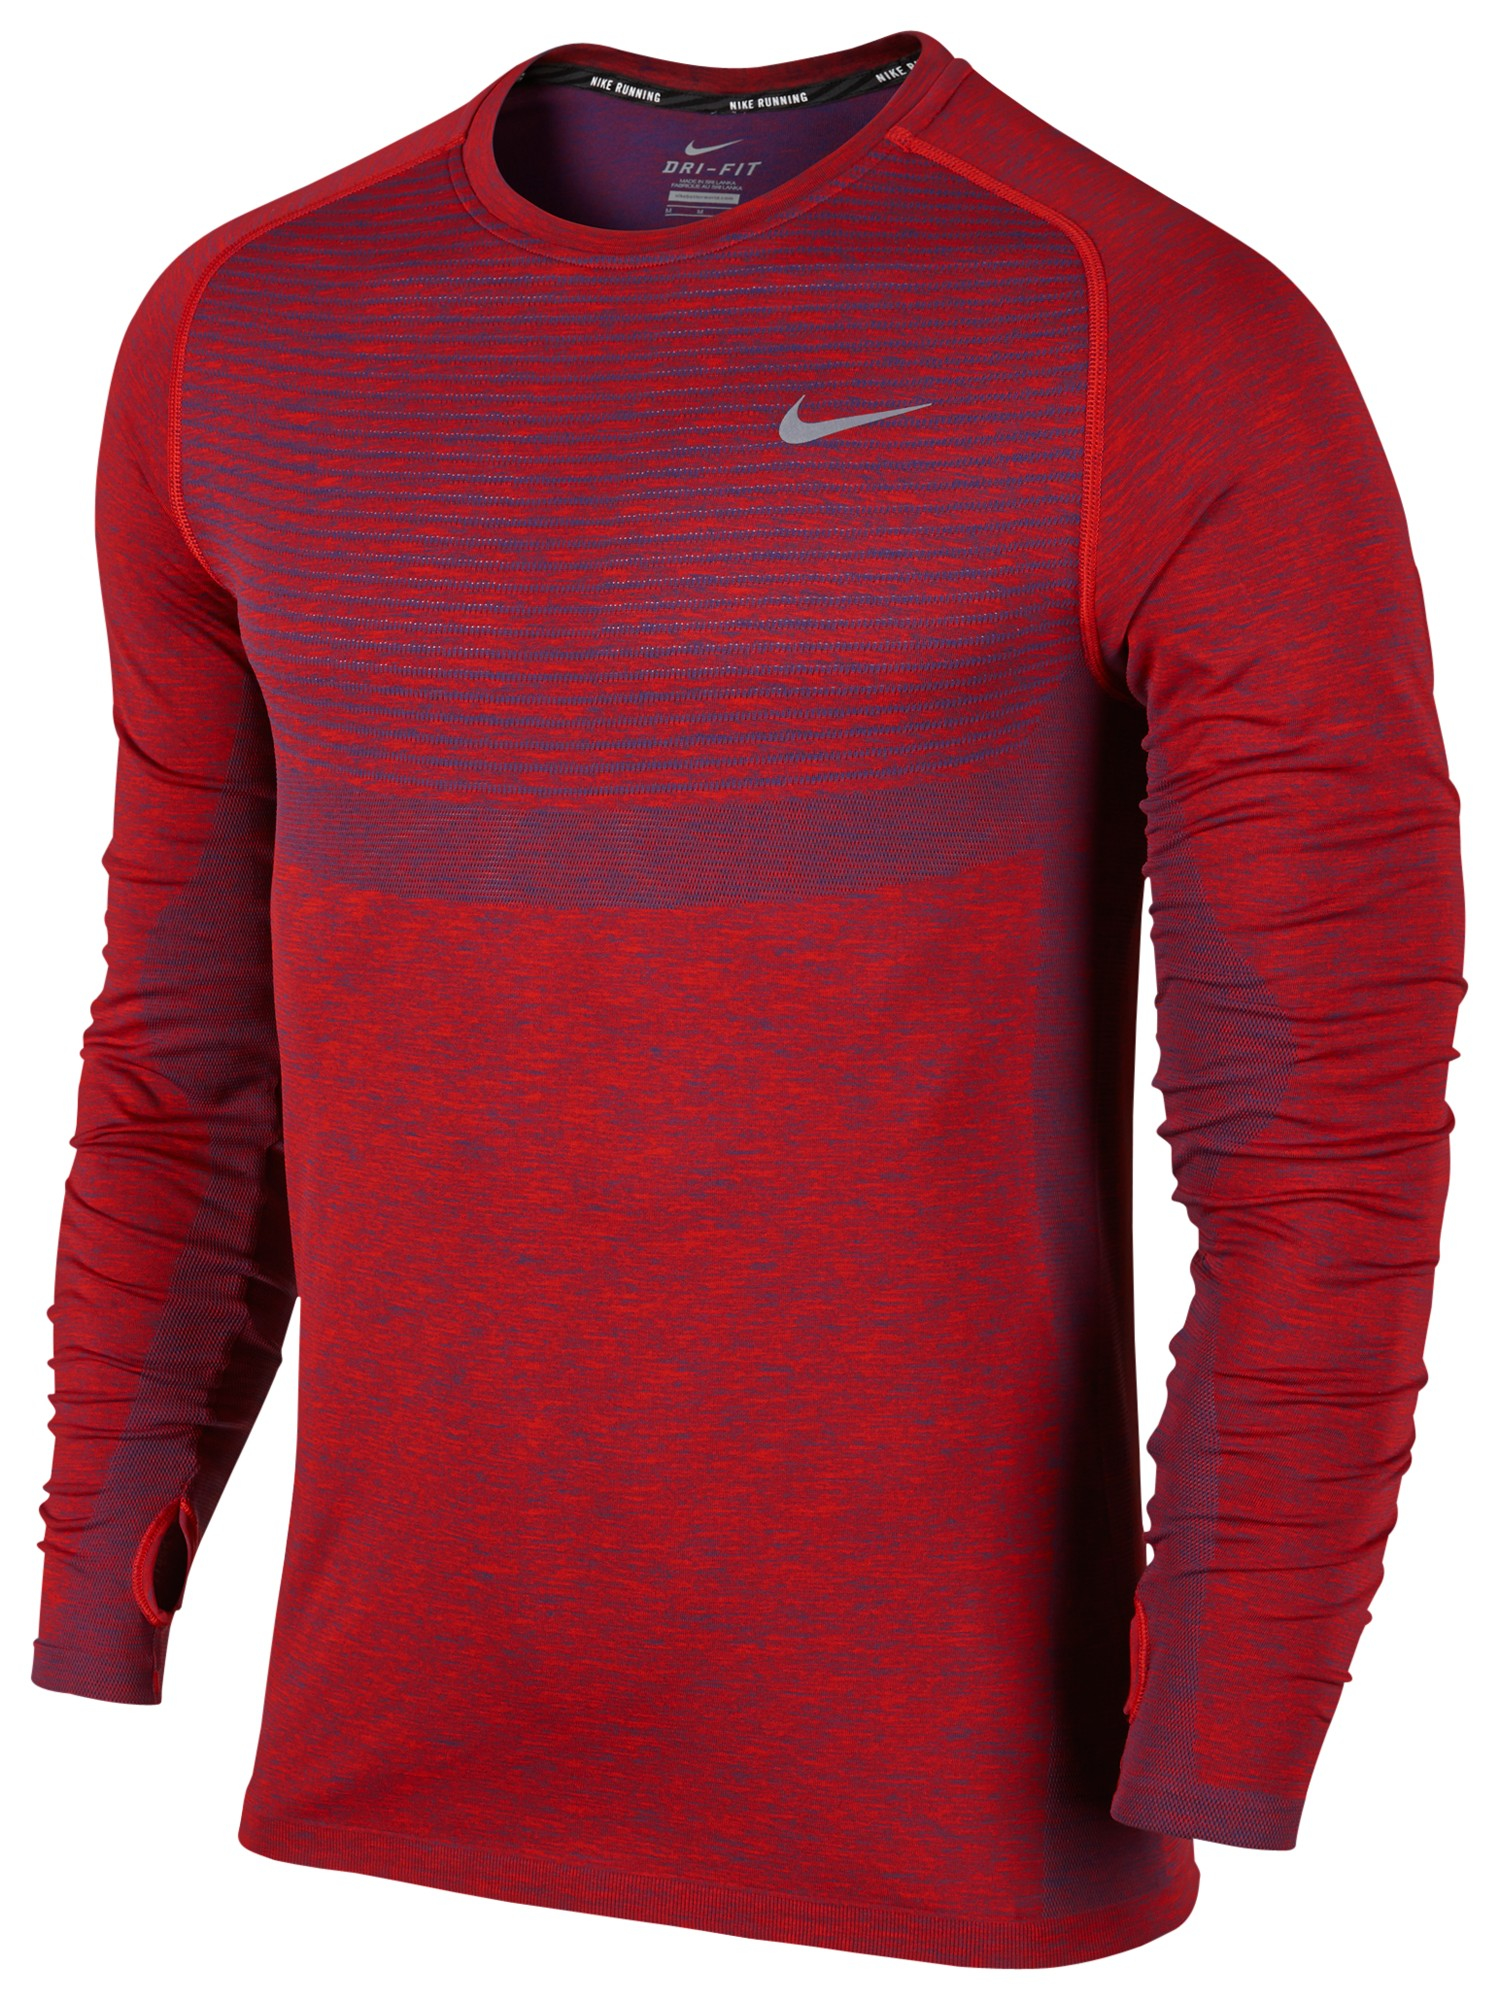 Lyst - Nike Dri-fit Knit Men's Running Top in Red for Men